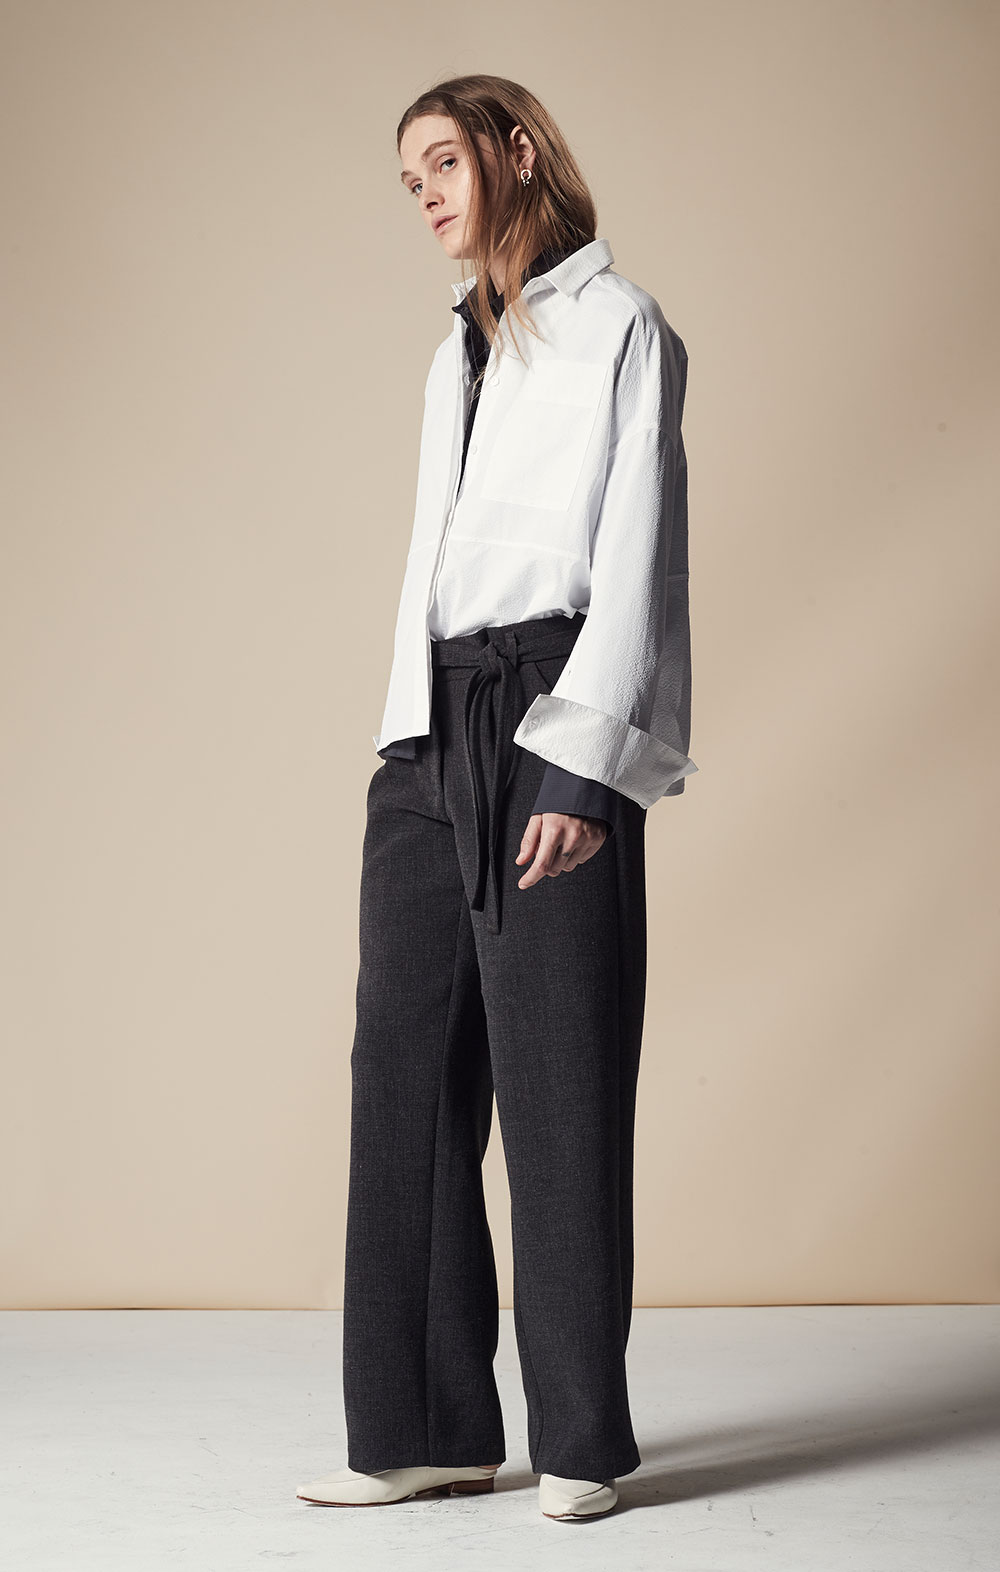 Open Sleeve Striped Shirt FBT020-WHT Open Sleeve Striped Shirt FBT020-BLK Tie Front Wide-leg Pants FBP035-CHR